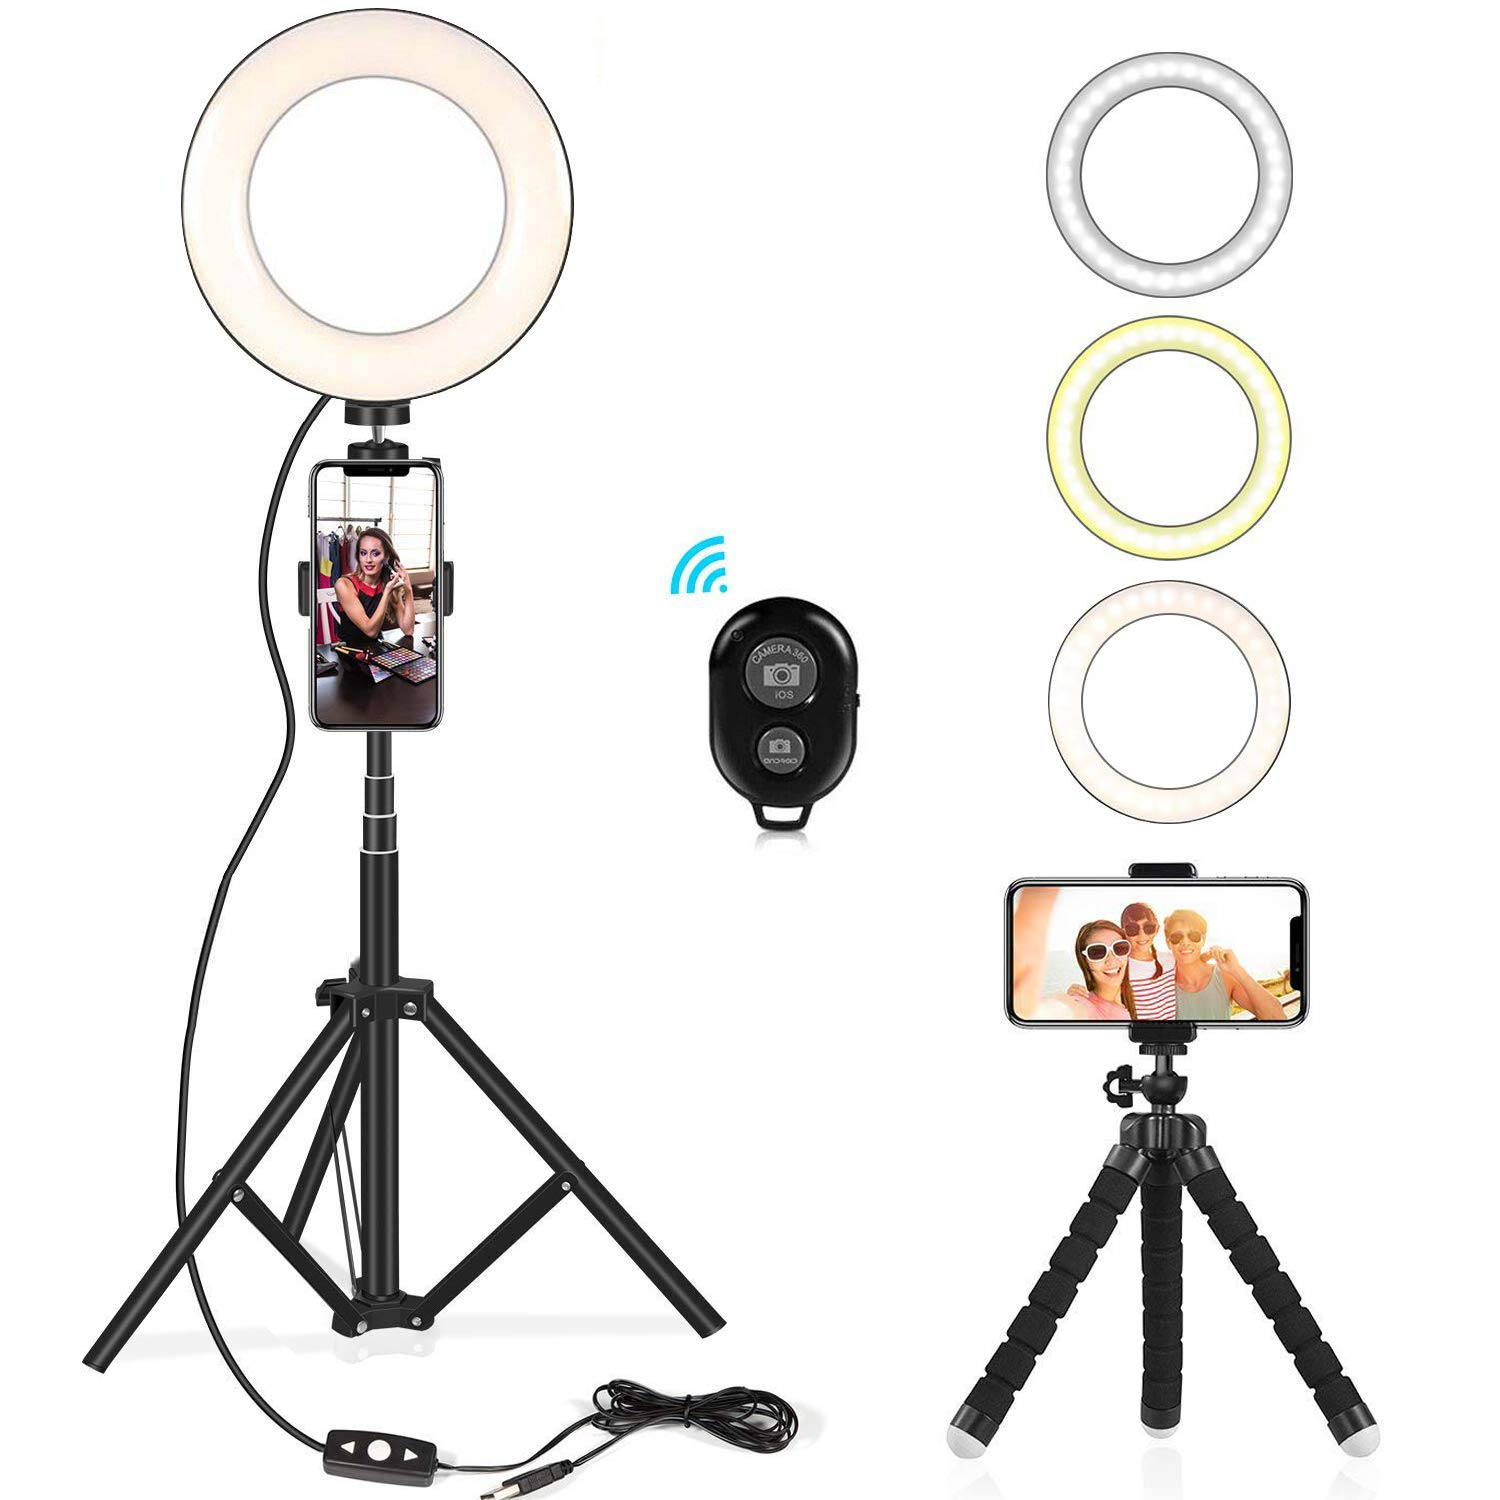 Selfie Ring Light Kit 6.5'' with Extendable Light Stand, Flexible Tripod Stand & Cell Phone Holder for YouTube Video Shooting/Live Stream/Makeup/Vlogs/Desktop with 3 Light Modes for iPhone, Android by Kaqinu